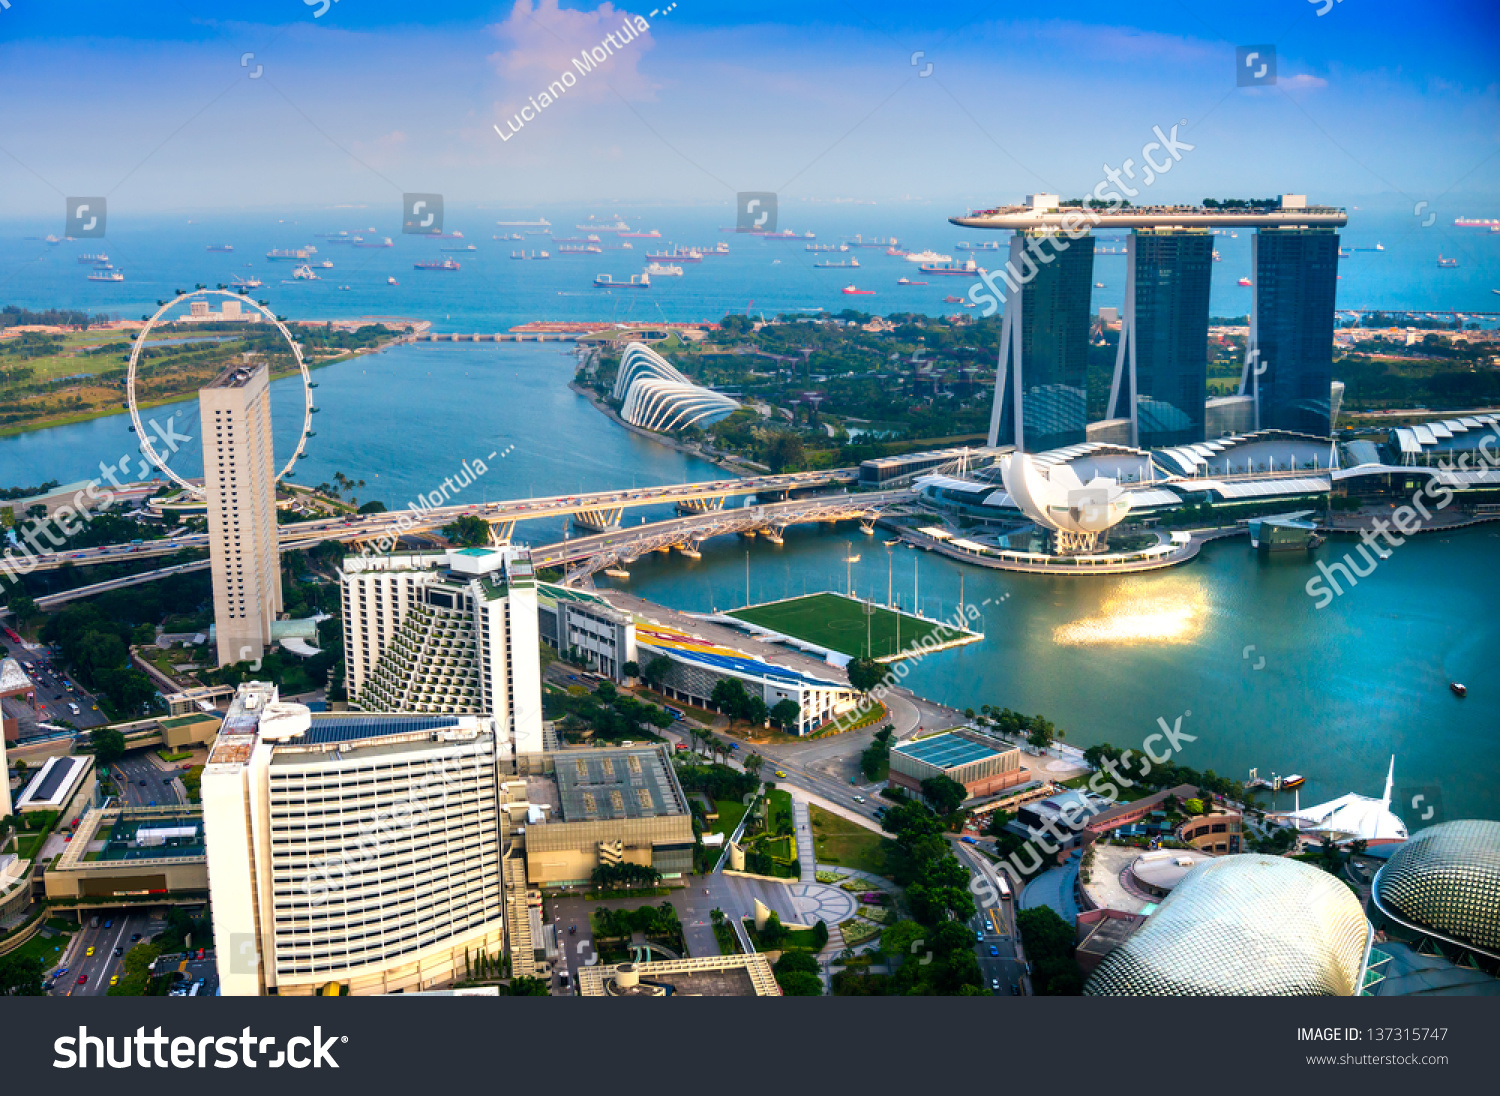 Singapore march 19 marina bay sands resort hotel on for Most luxurious hotel in singapore